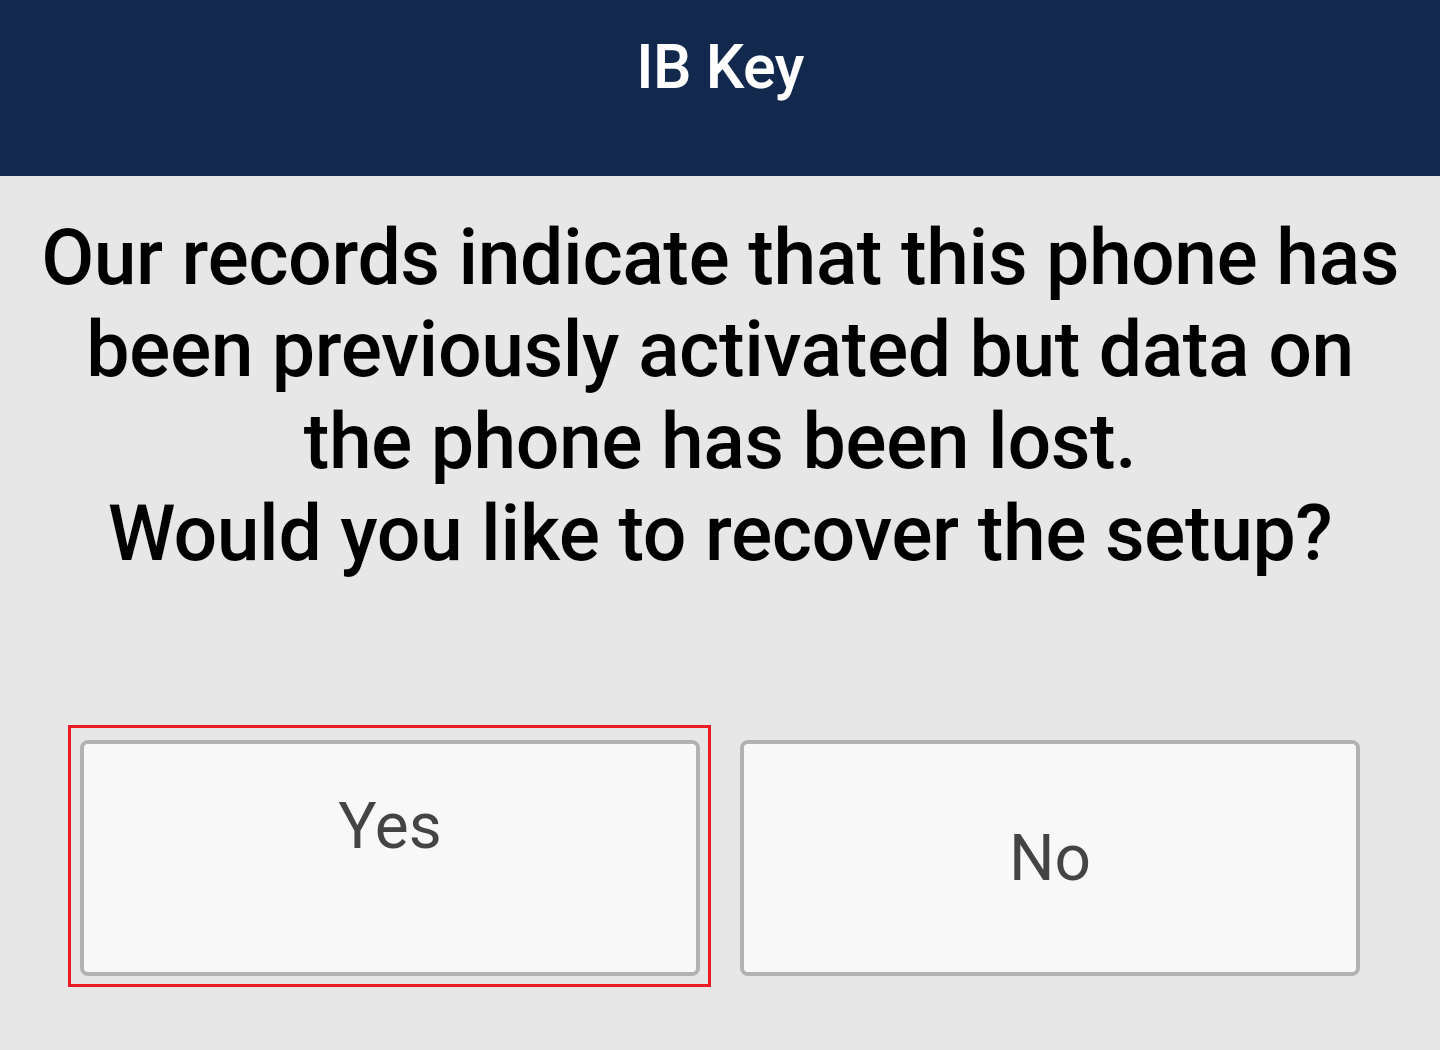 Launch IB Key App for Recovery